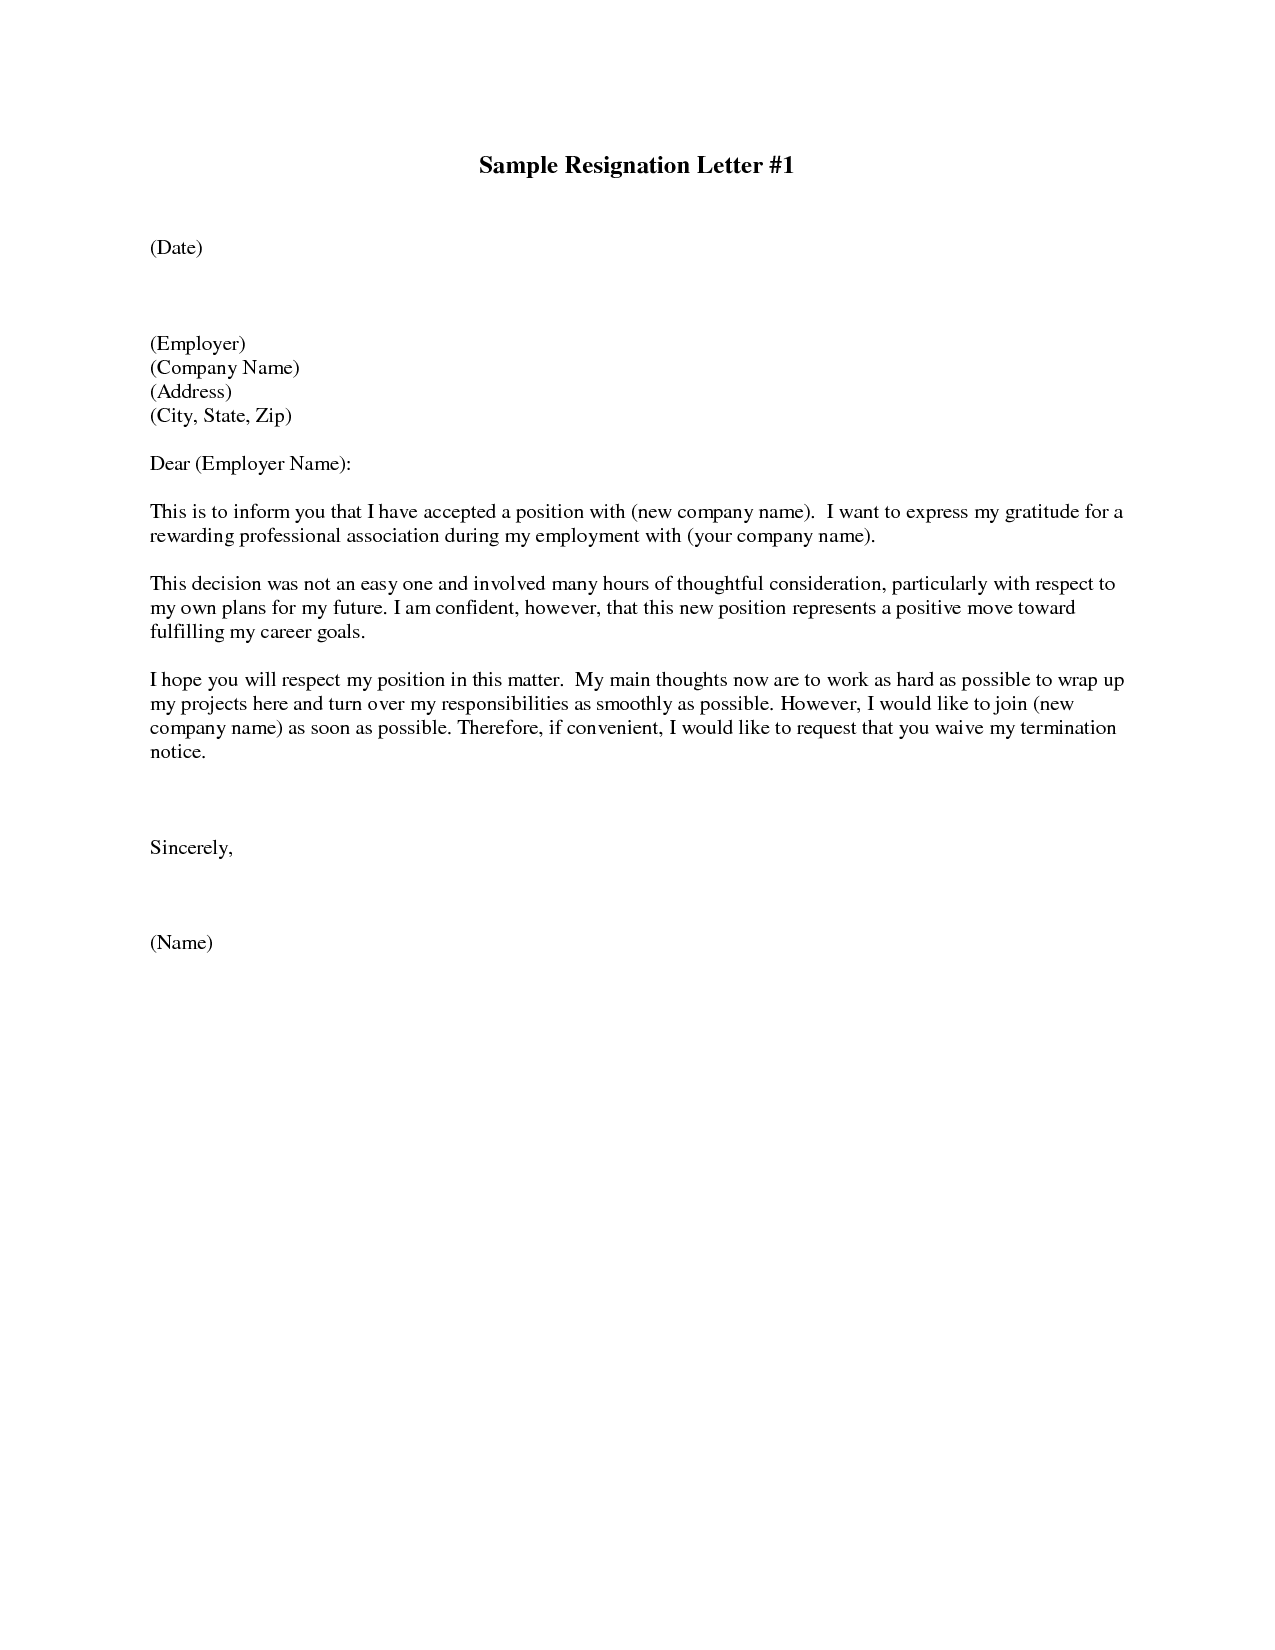 Professional Cover Letter Template Unique Printable Sample Letter Of Resignation Form  Laywers Template Inspiration Design